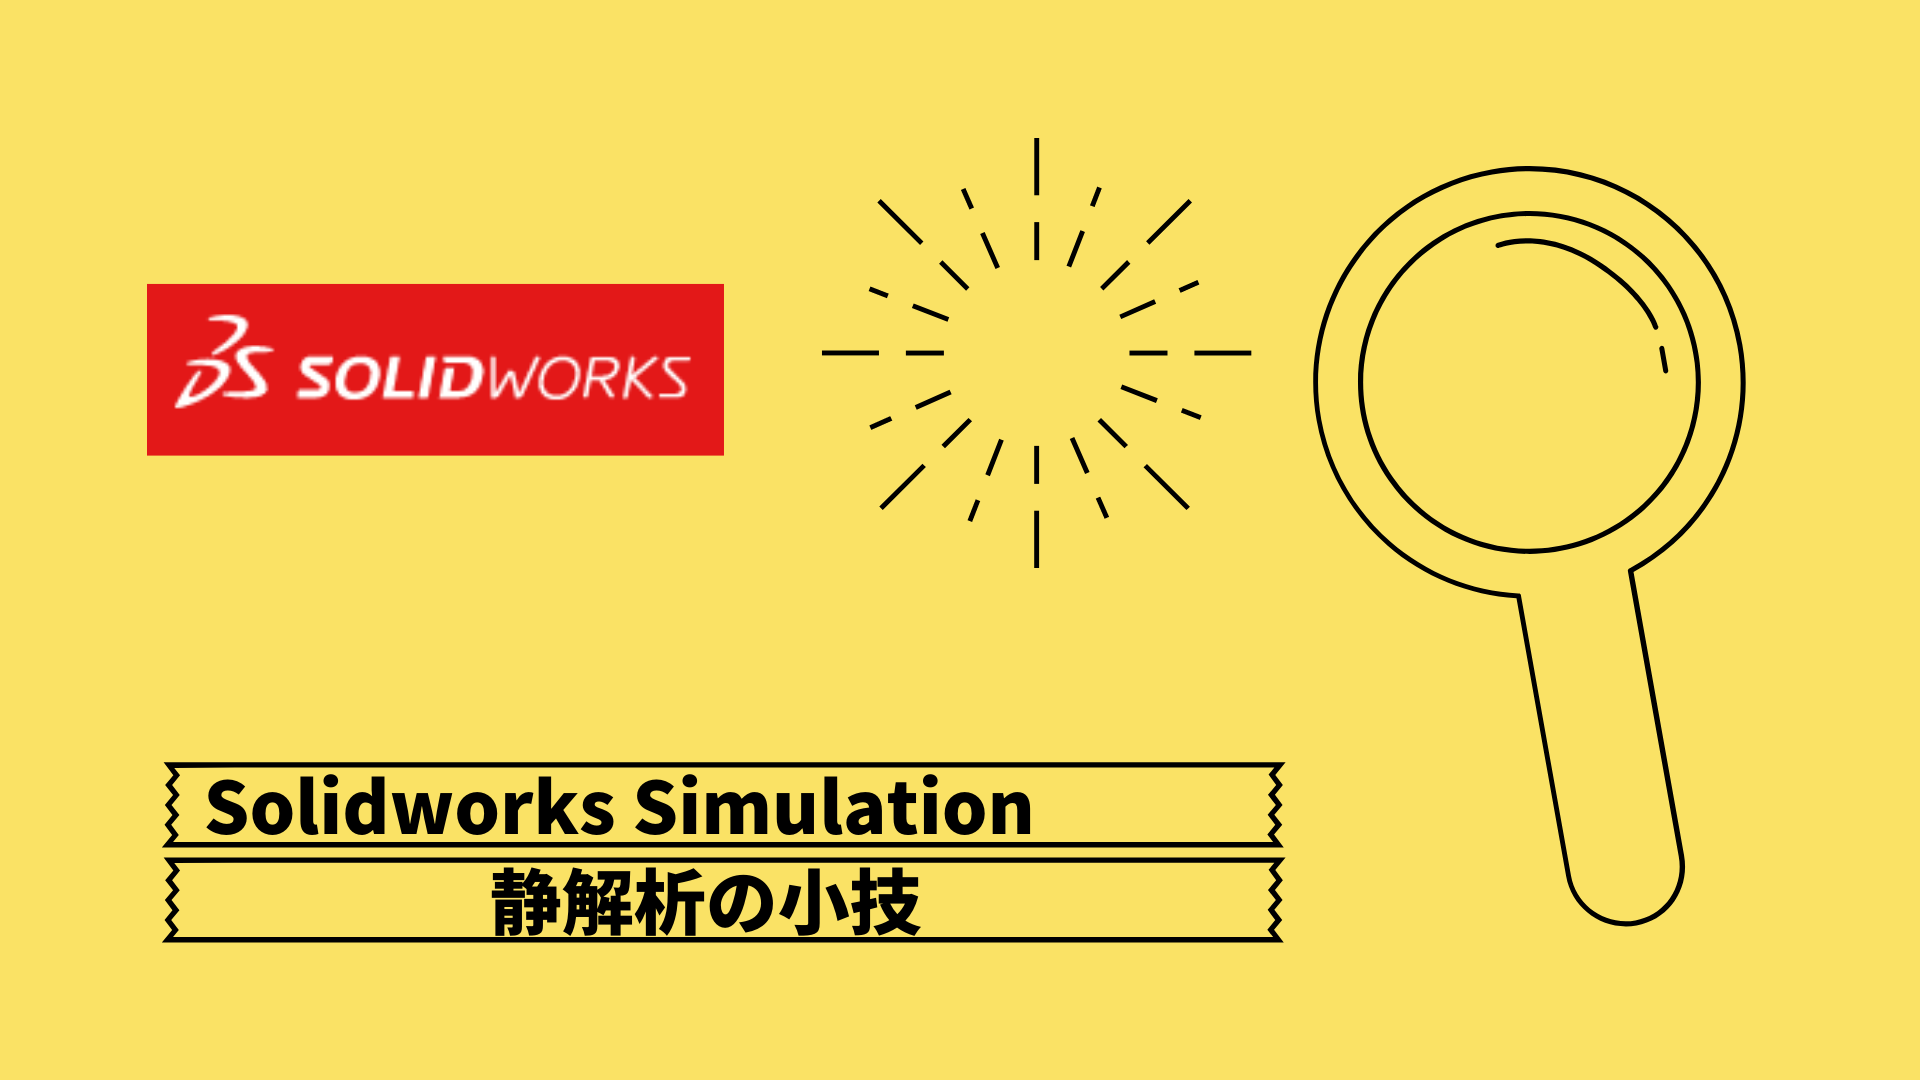 Soliworks Simulation